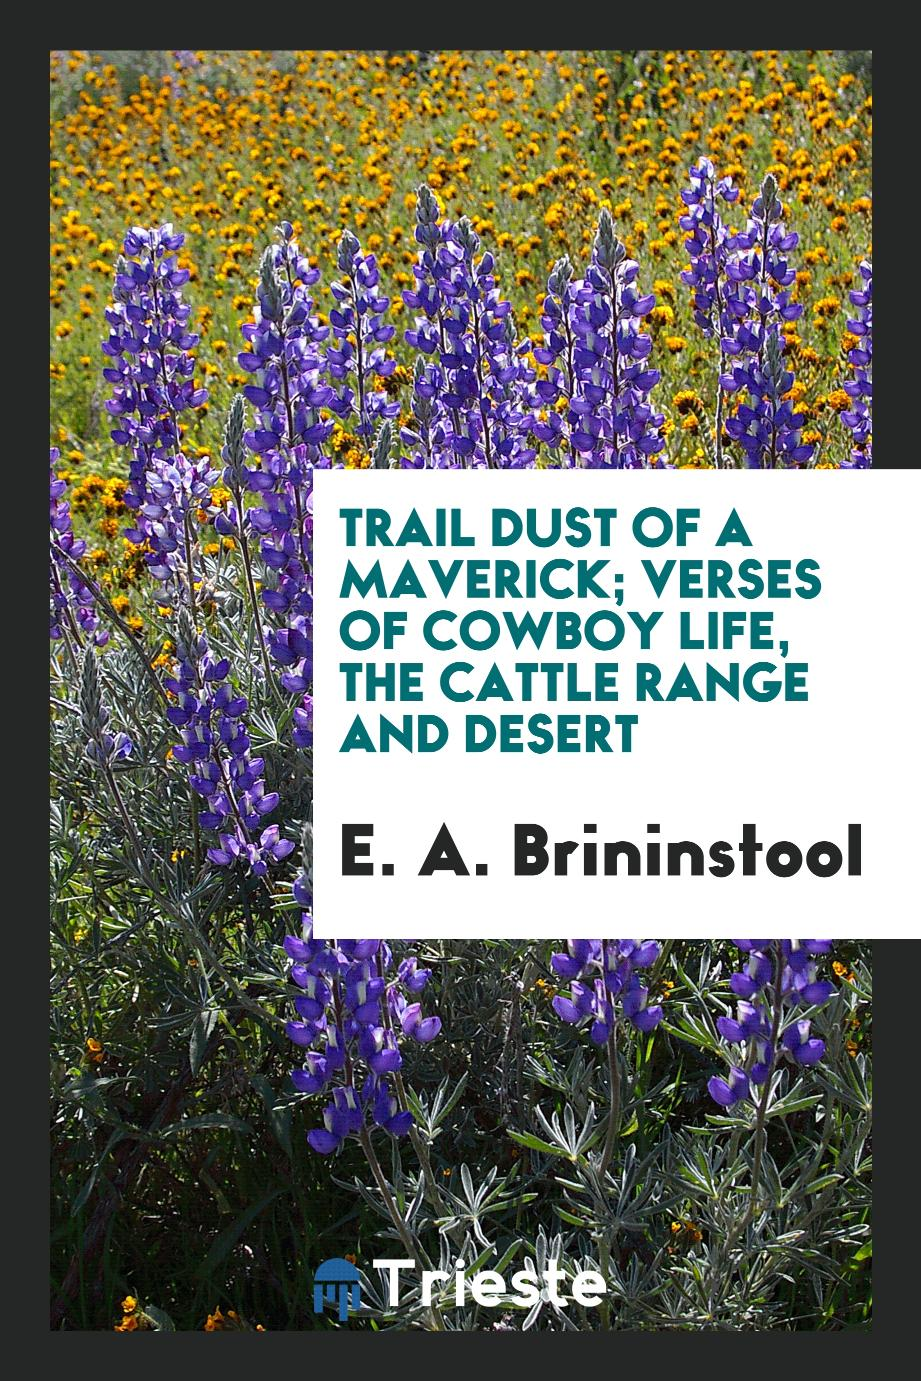 Trail dust of a maverick; verses of cowboy life, the cattle range and desert